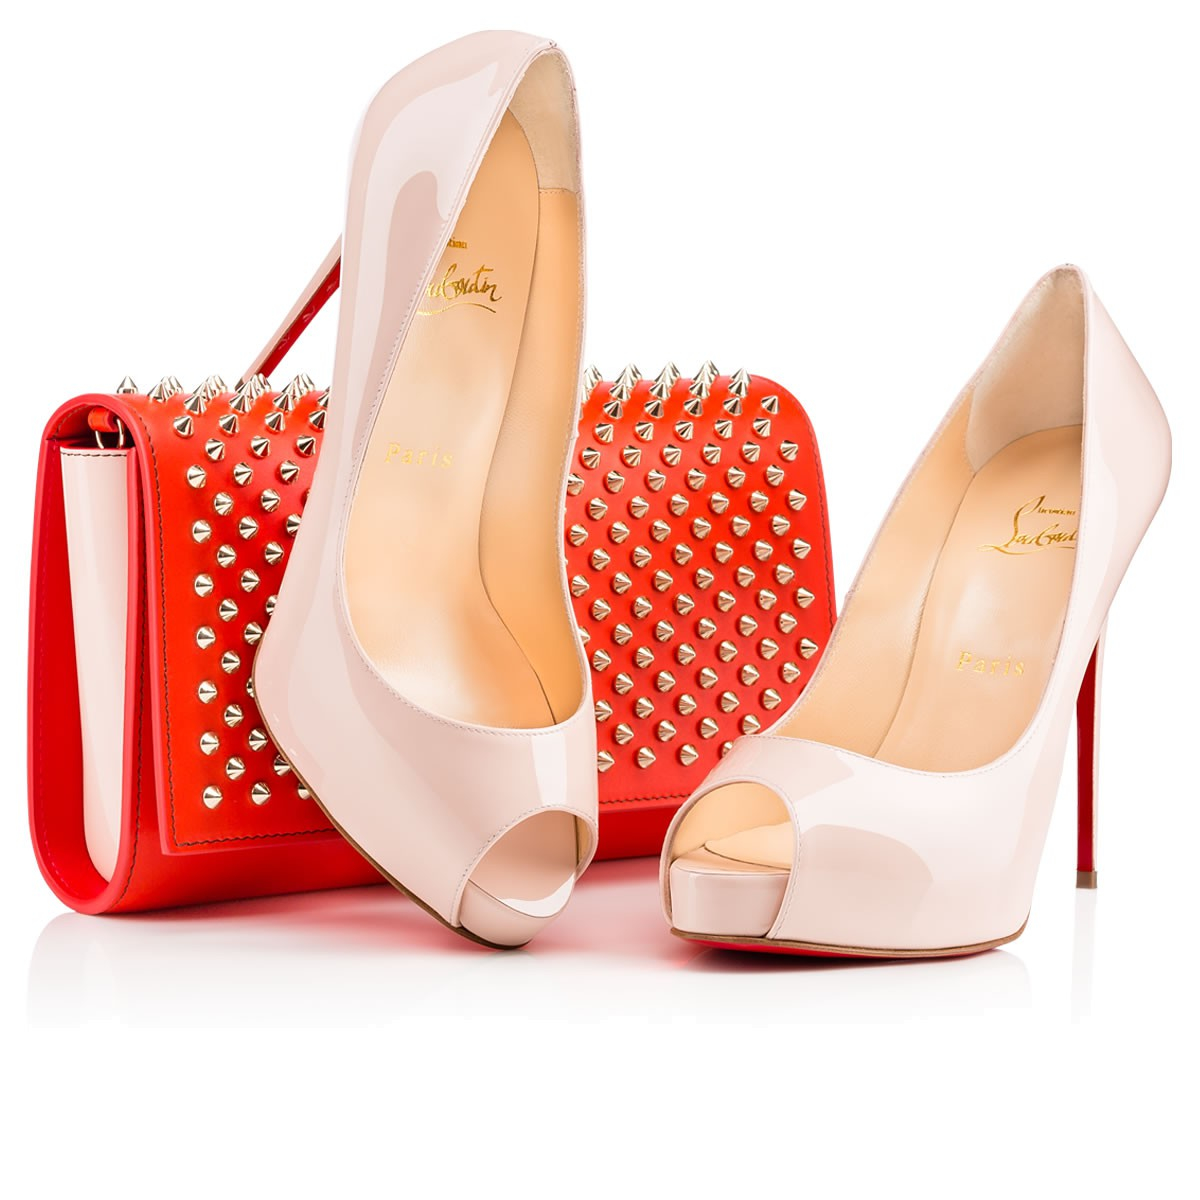 Christian louboutin Very Prive Patent Leather Platform Pumps in ...